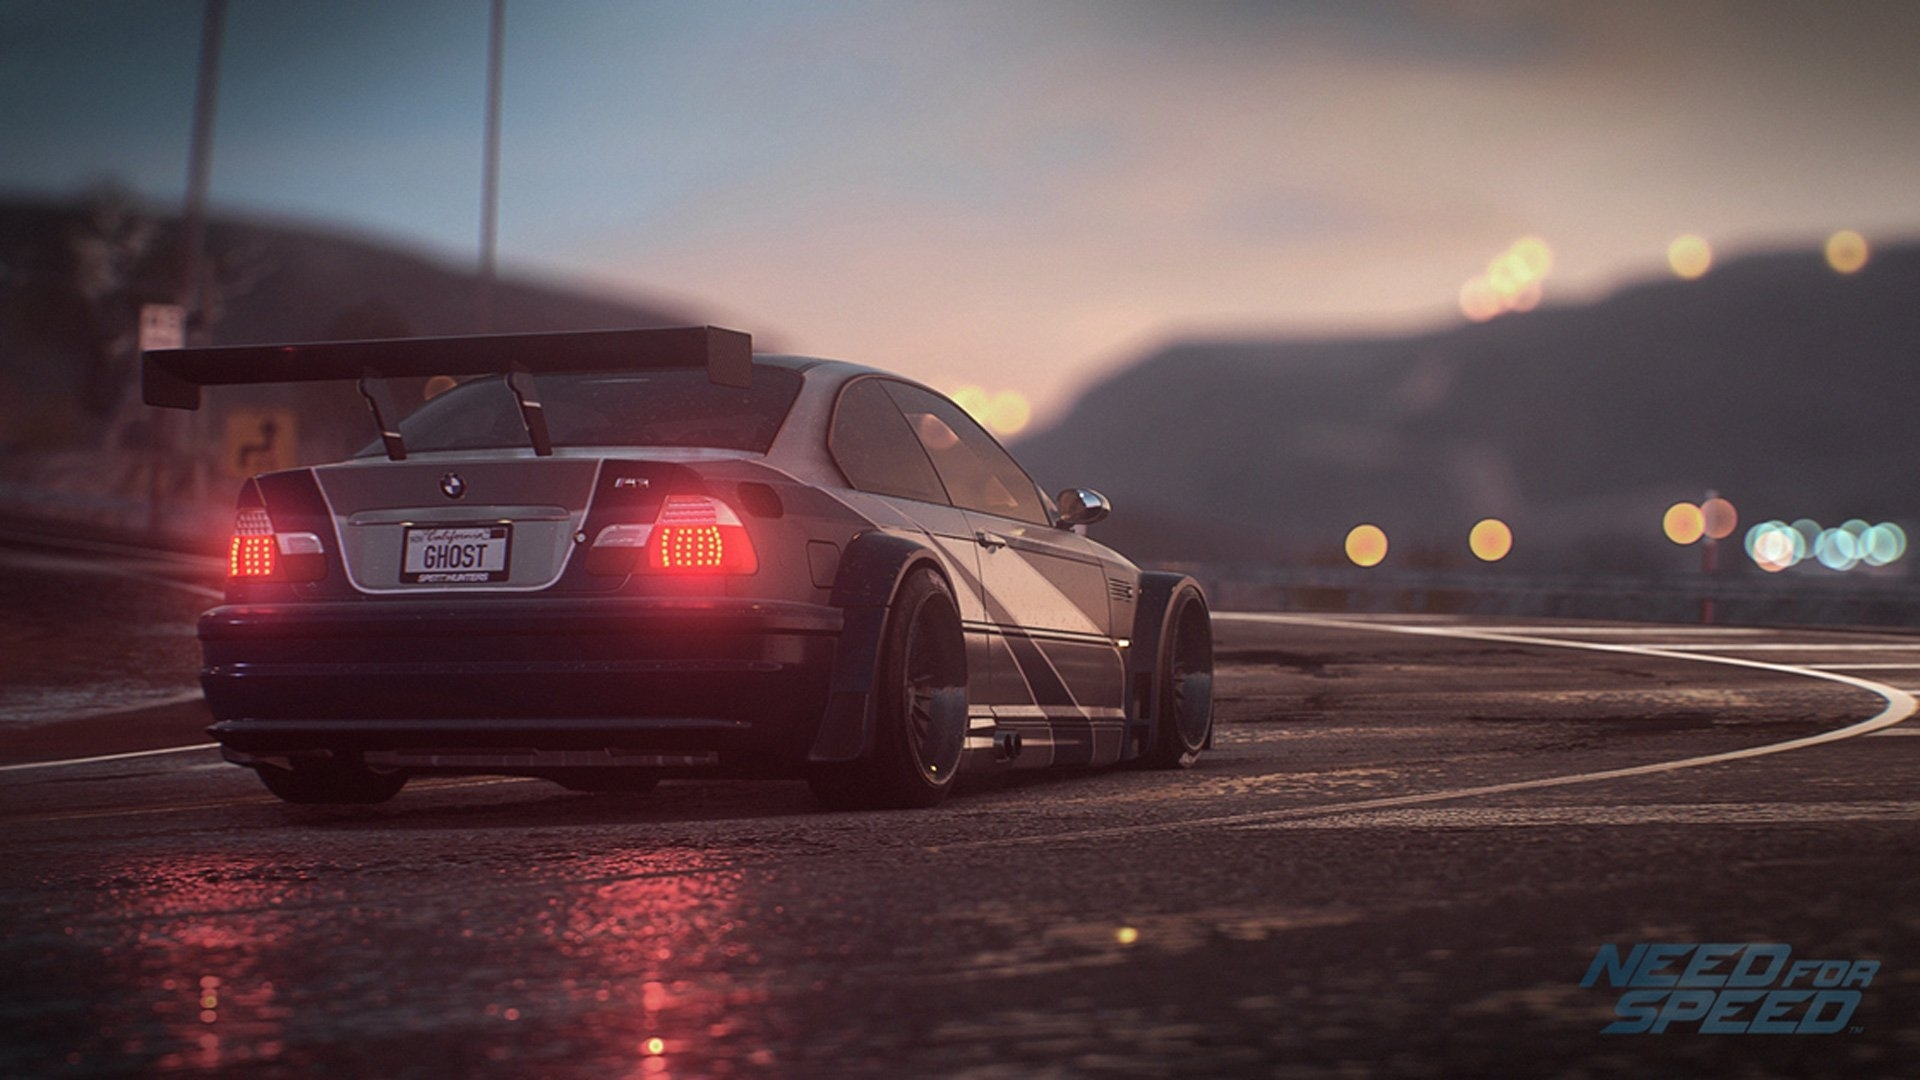 754 need for speed hd wallpapers | background images - wallpaper abyss